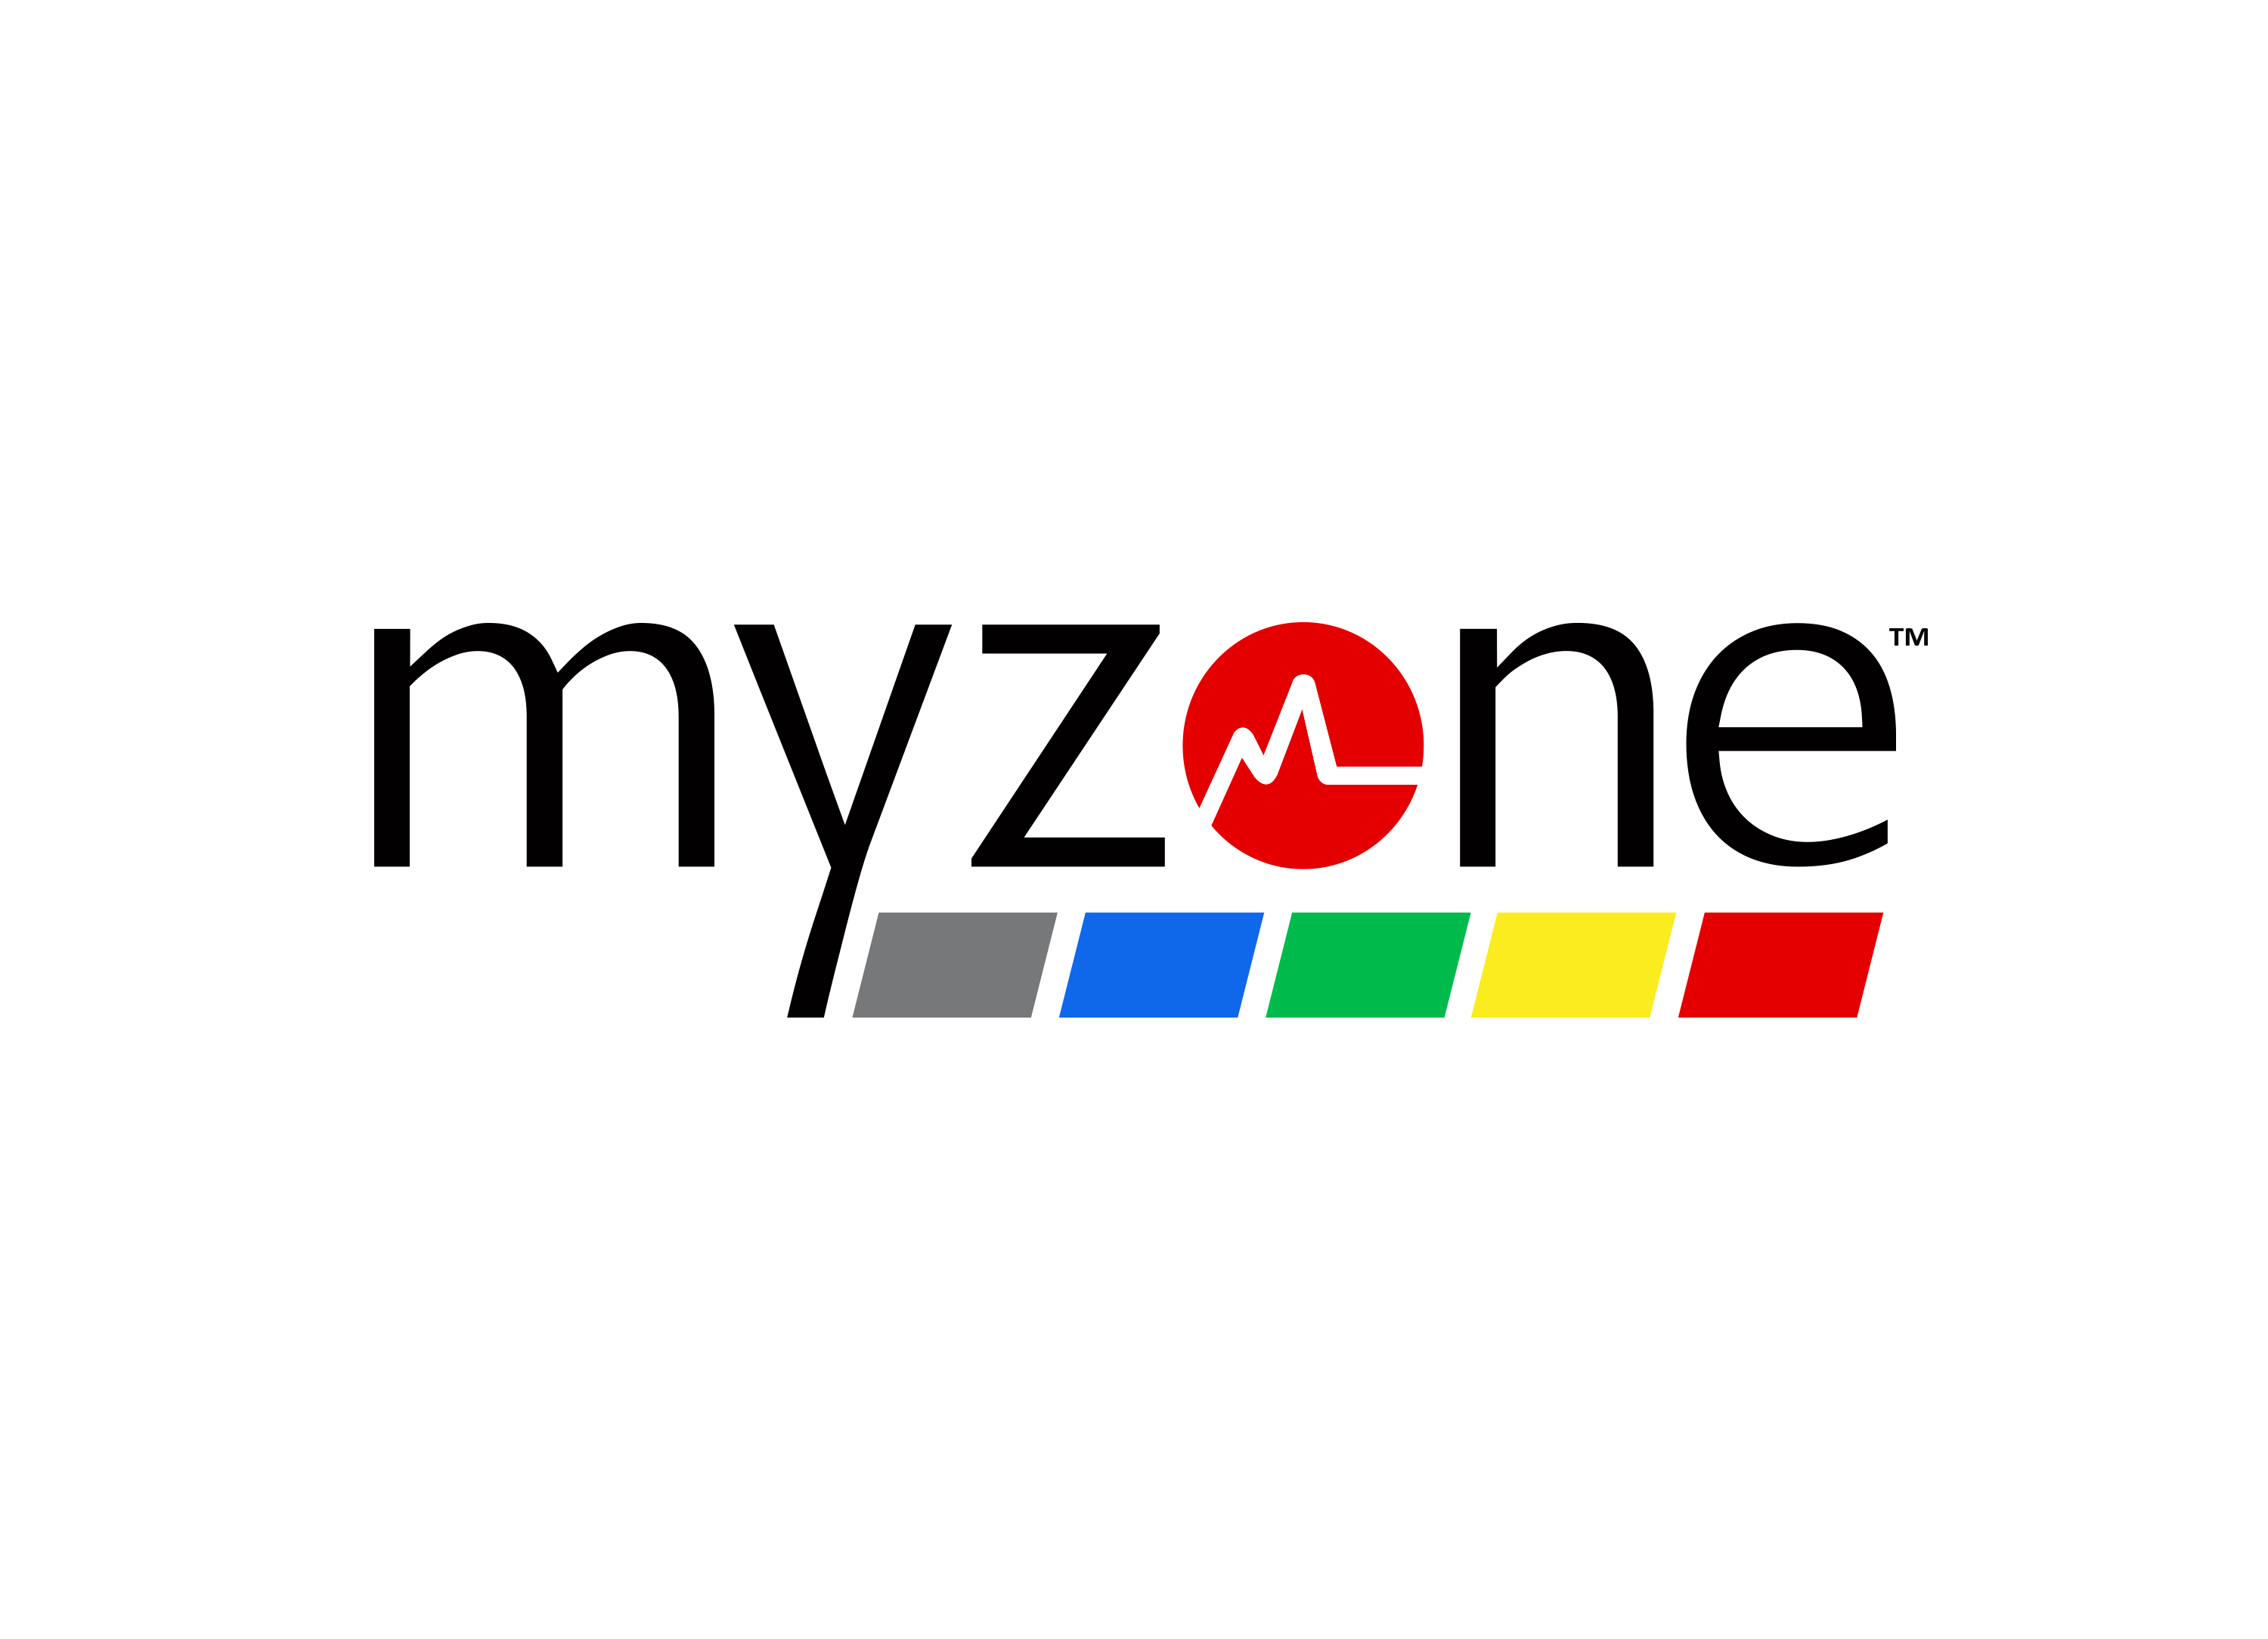 MYZONE Black text for white background